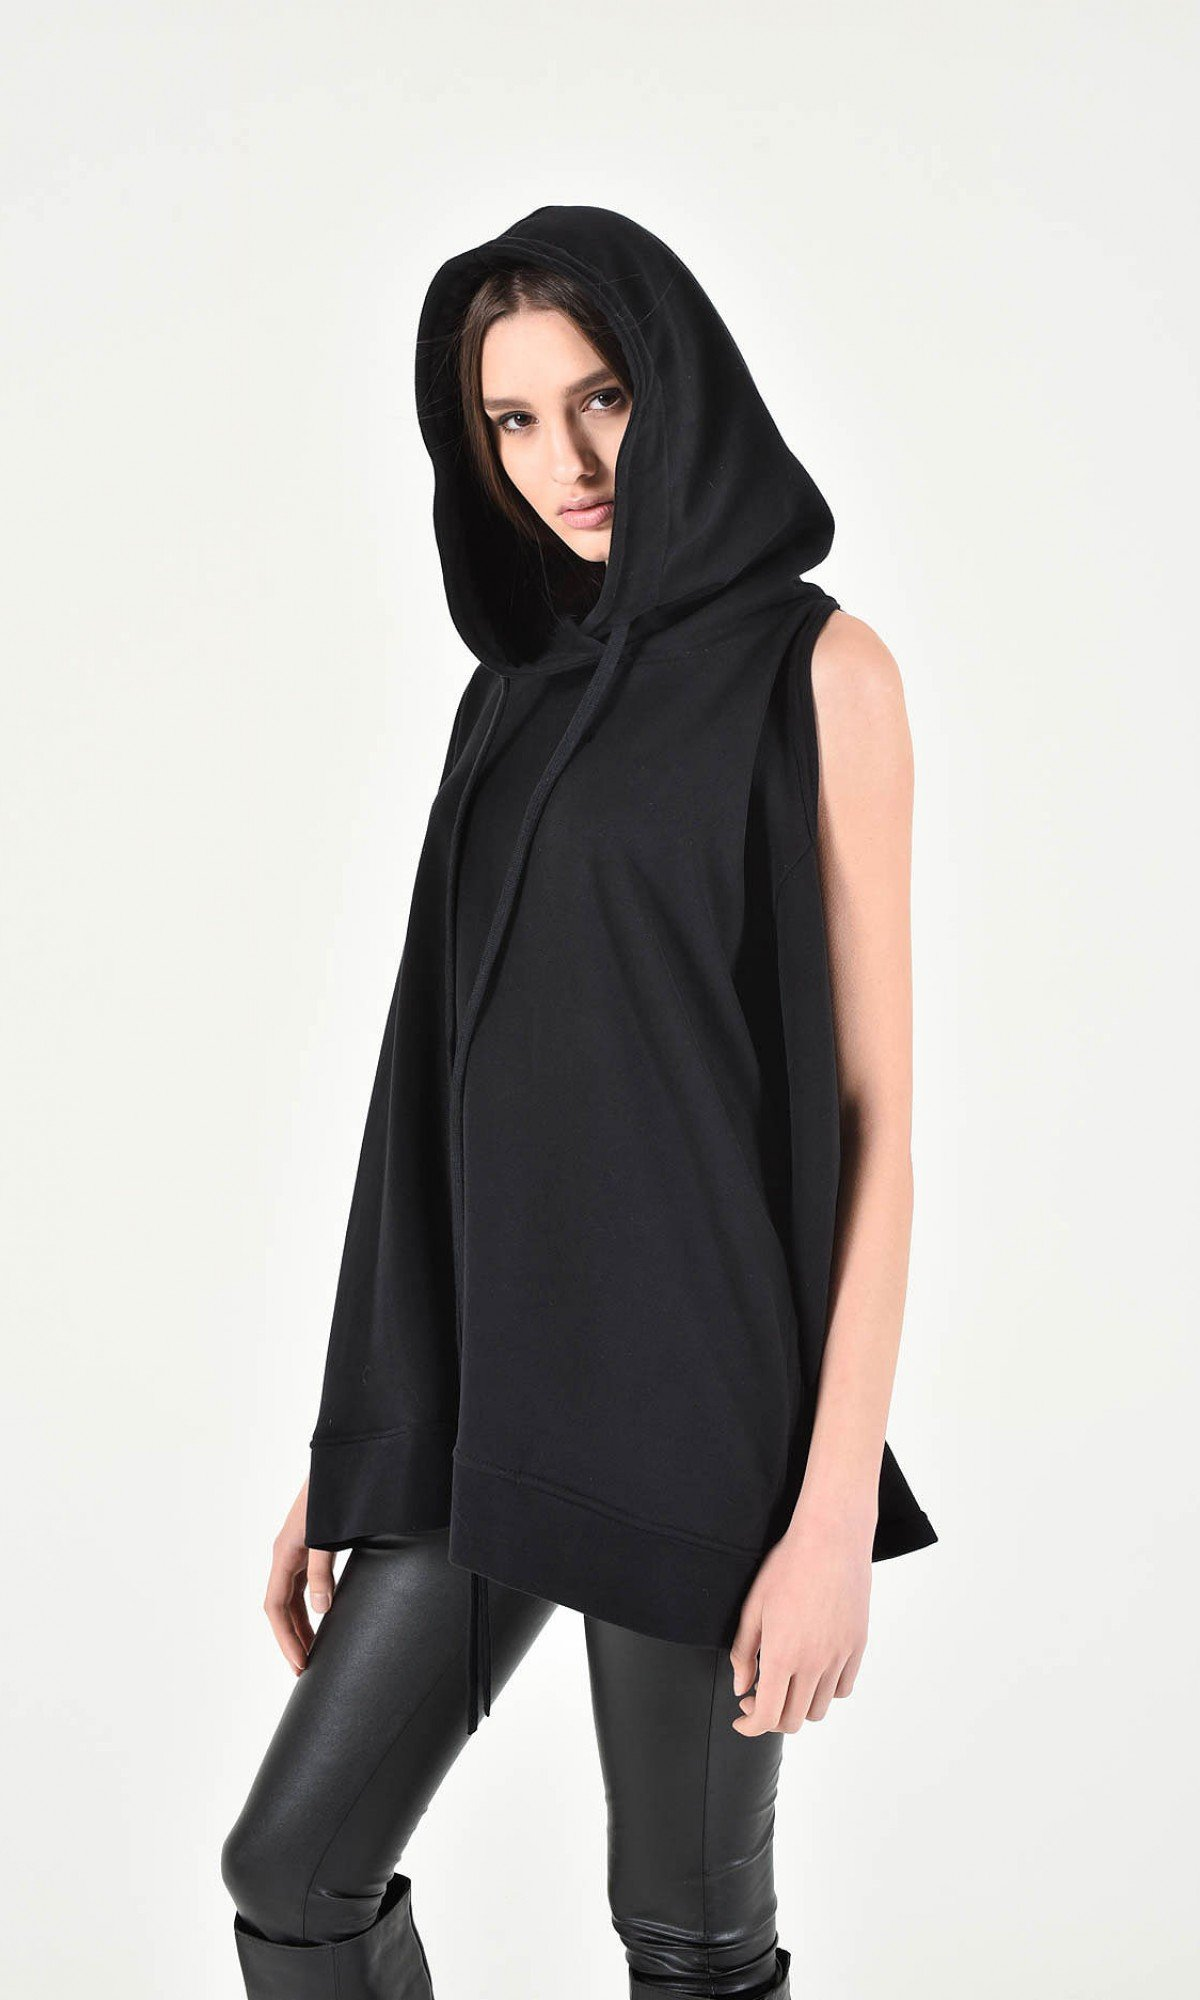 Extravagant Open Shoulder Hooded Sweatshirt A90228